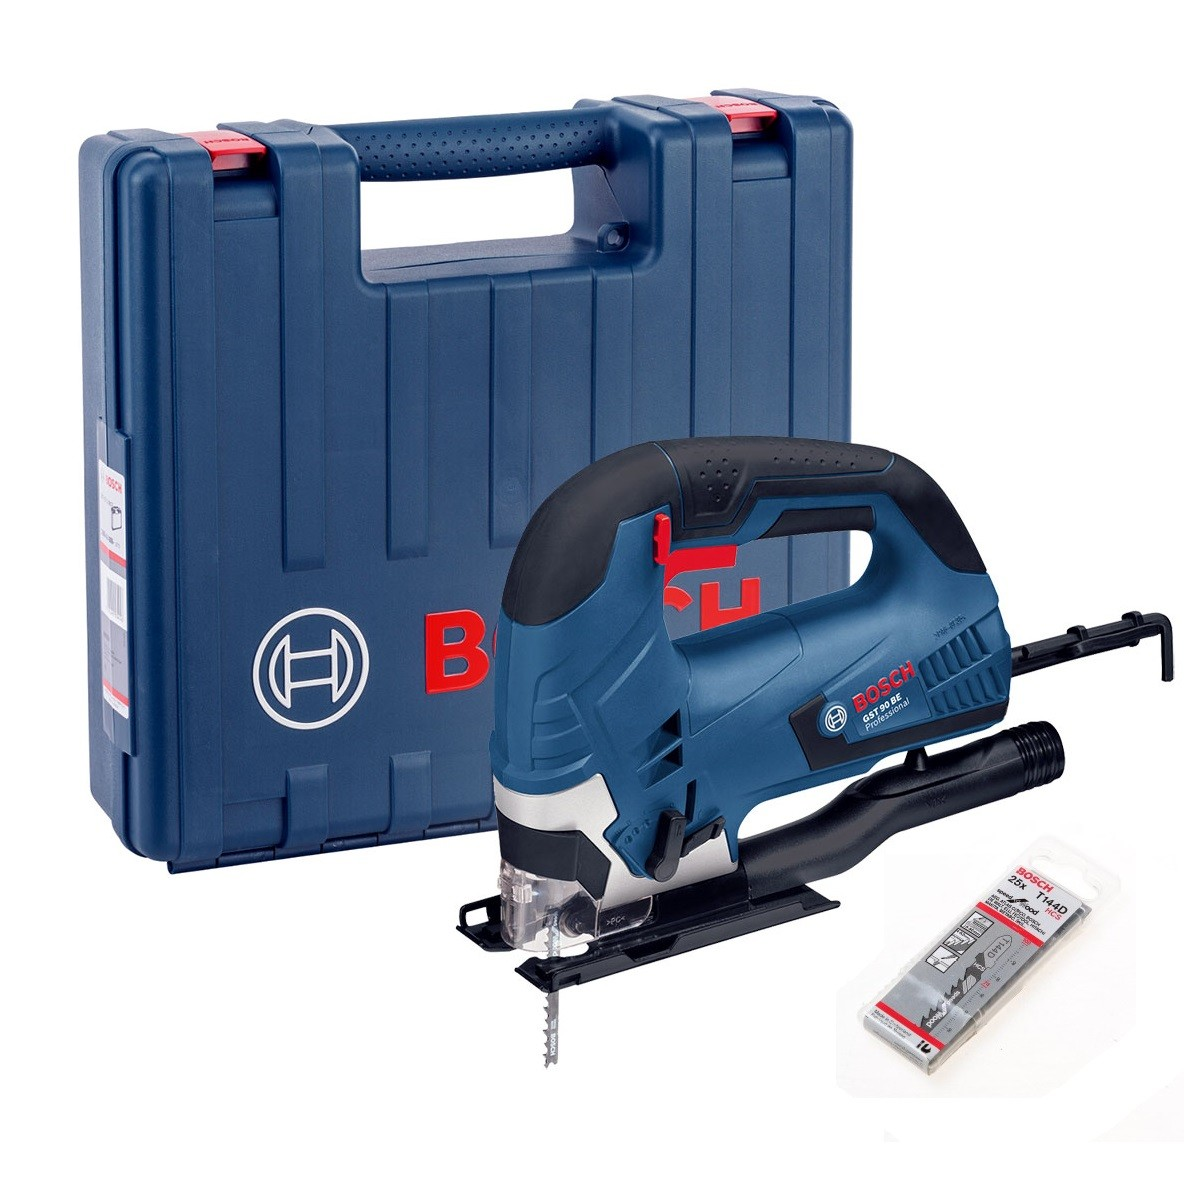 bosch gst 90 be 90mm bow handle jigsaw in carry case 25 blades powertool world. Black Bedroom Furniture Sets. Home Design Ideas